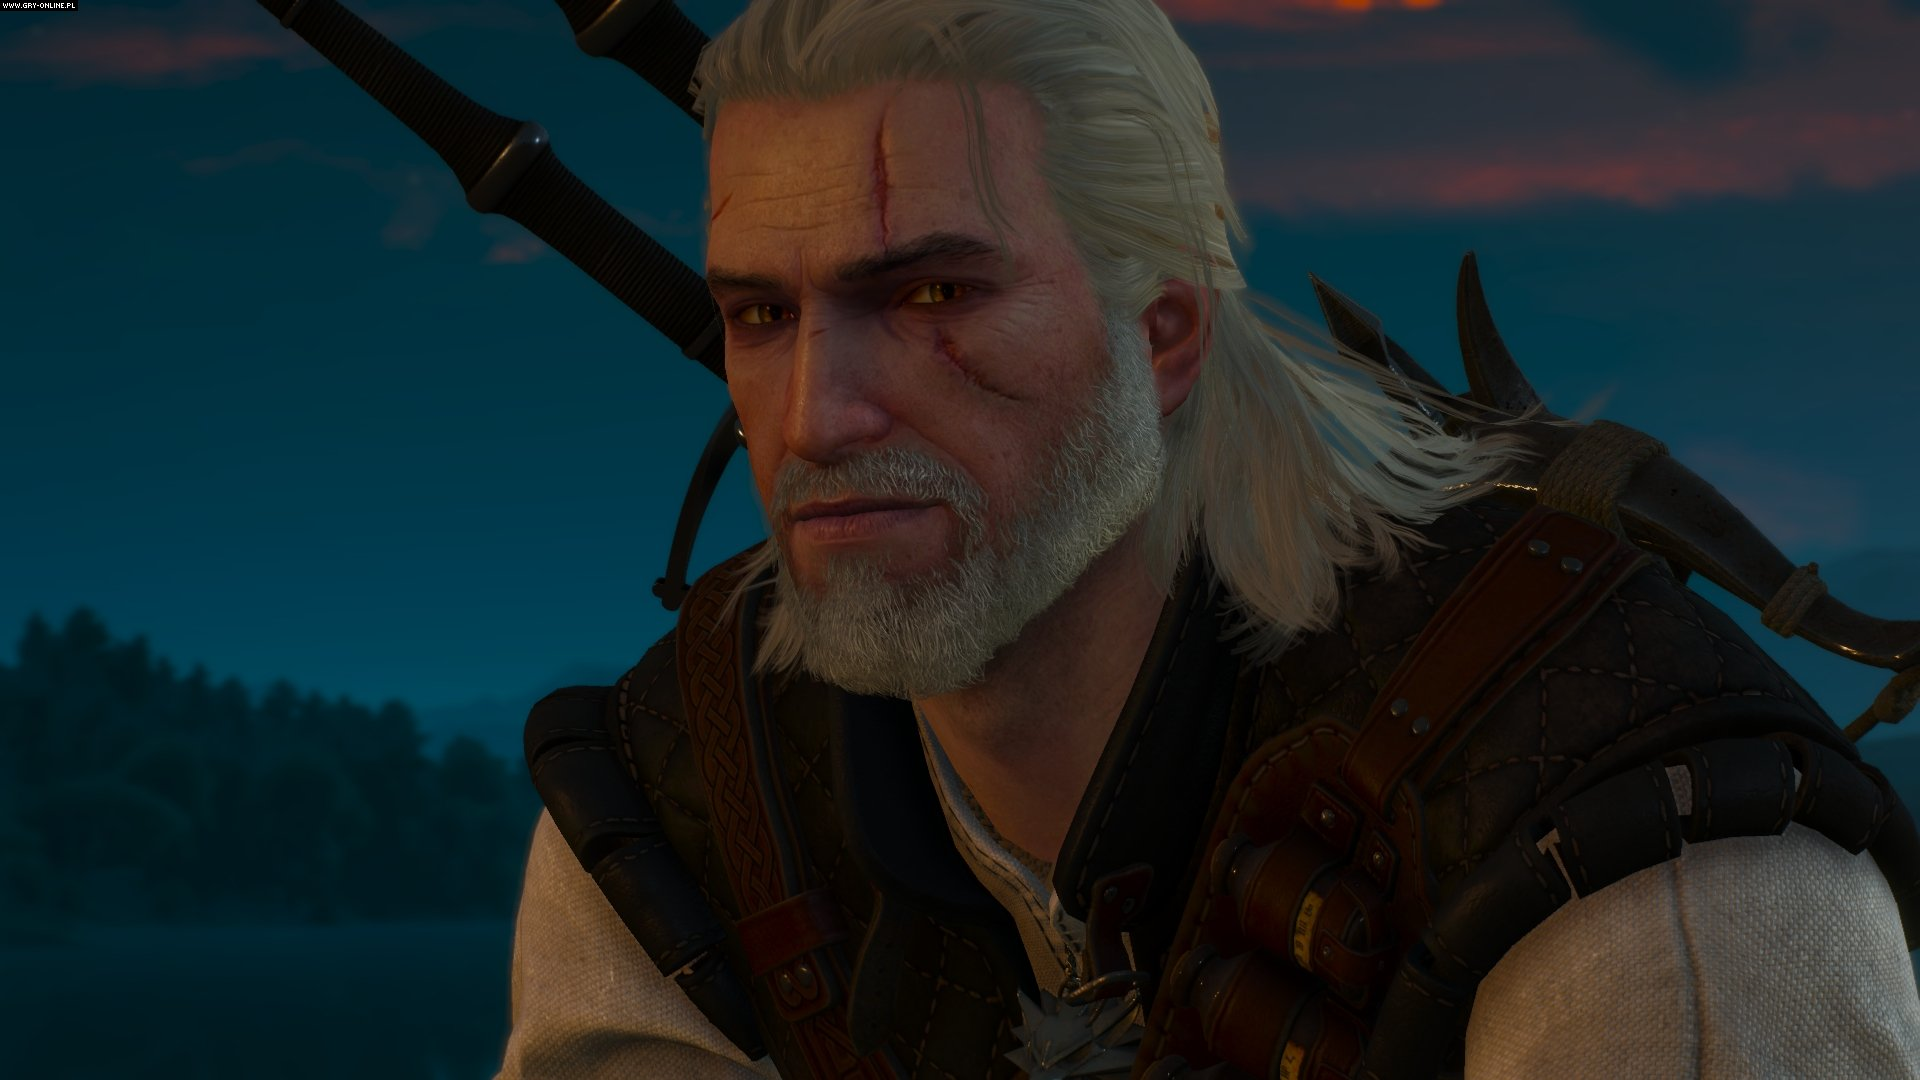 The Witcher 3: Blood and Wine PC, XONE, PS4 Games Image 2/47, CD Projekt RED, Bandai Namco Entertainment